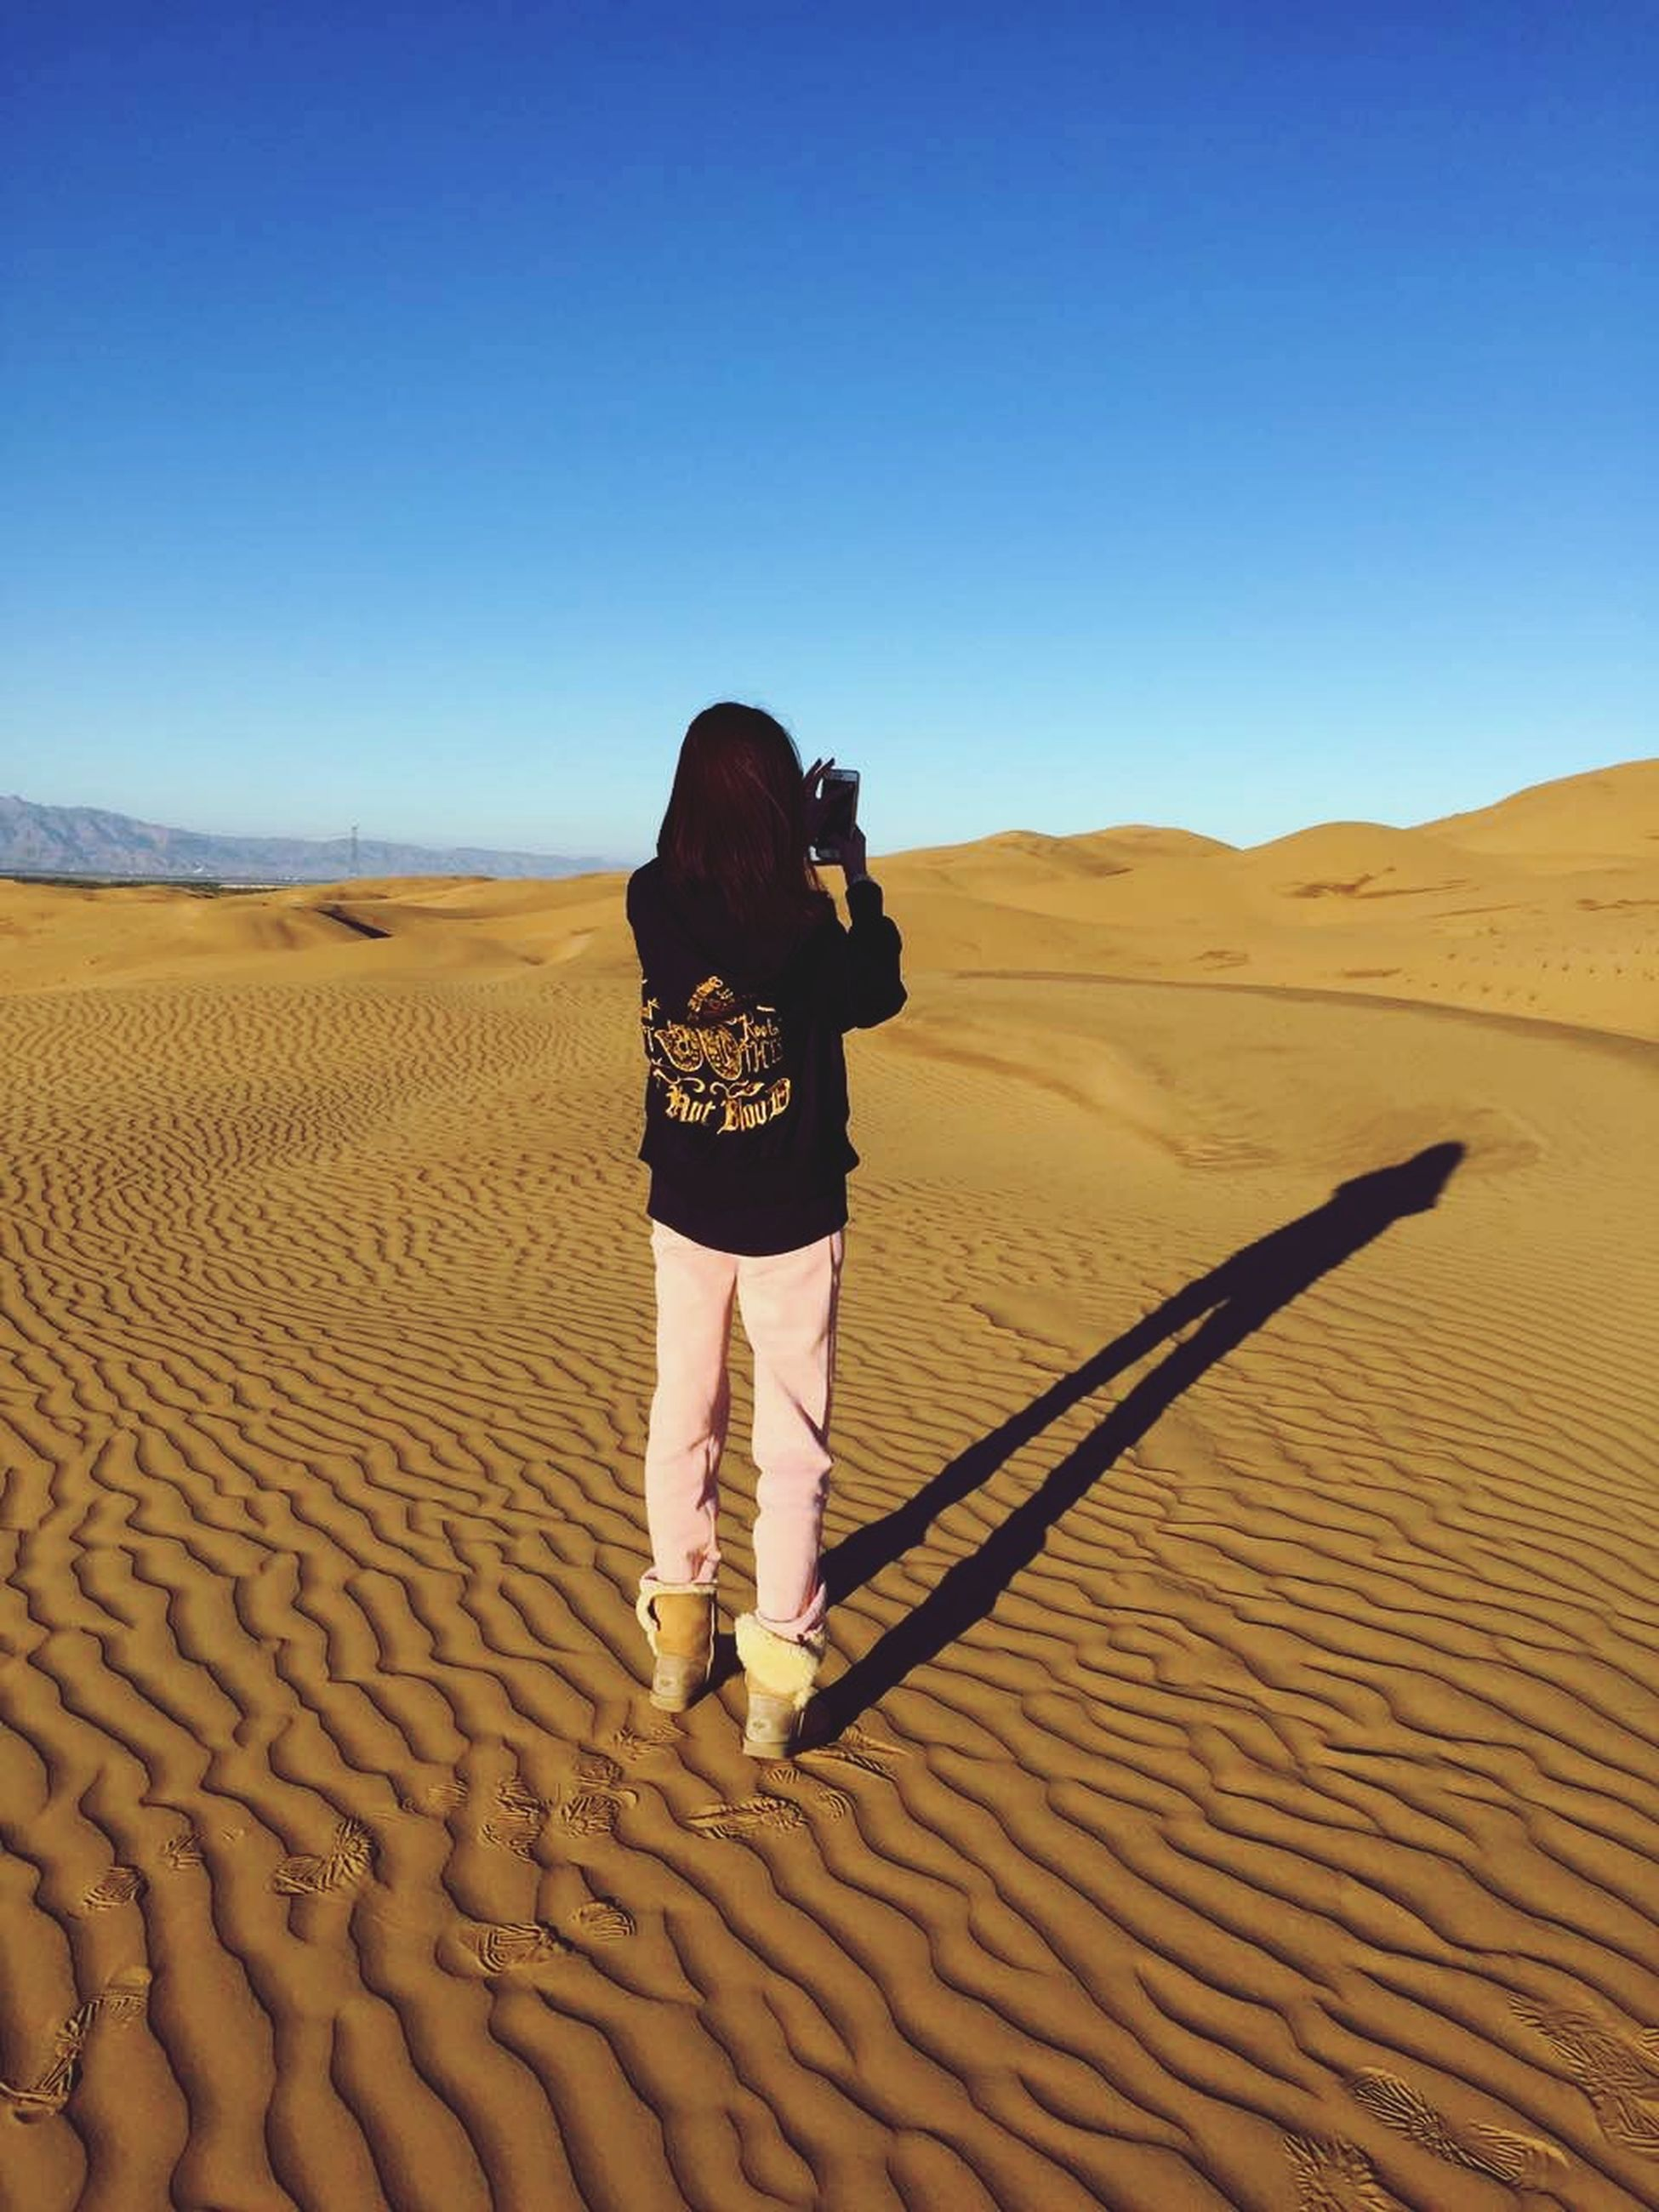 clear sky, sand, landscape, desert, sand dune, full length, lifestyles, tranquil scene, leisure activity, arid climate, tranquility, blue, copy space, rear view, horizon over land, casual clothing, scenics, nature